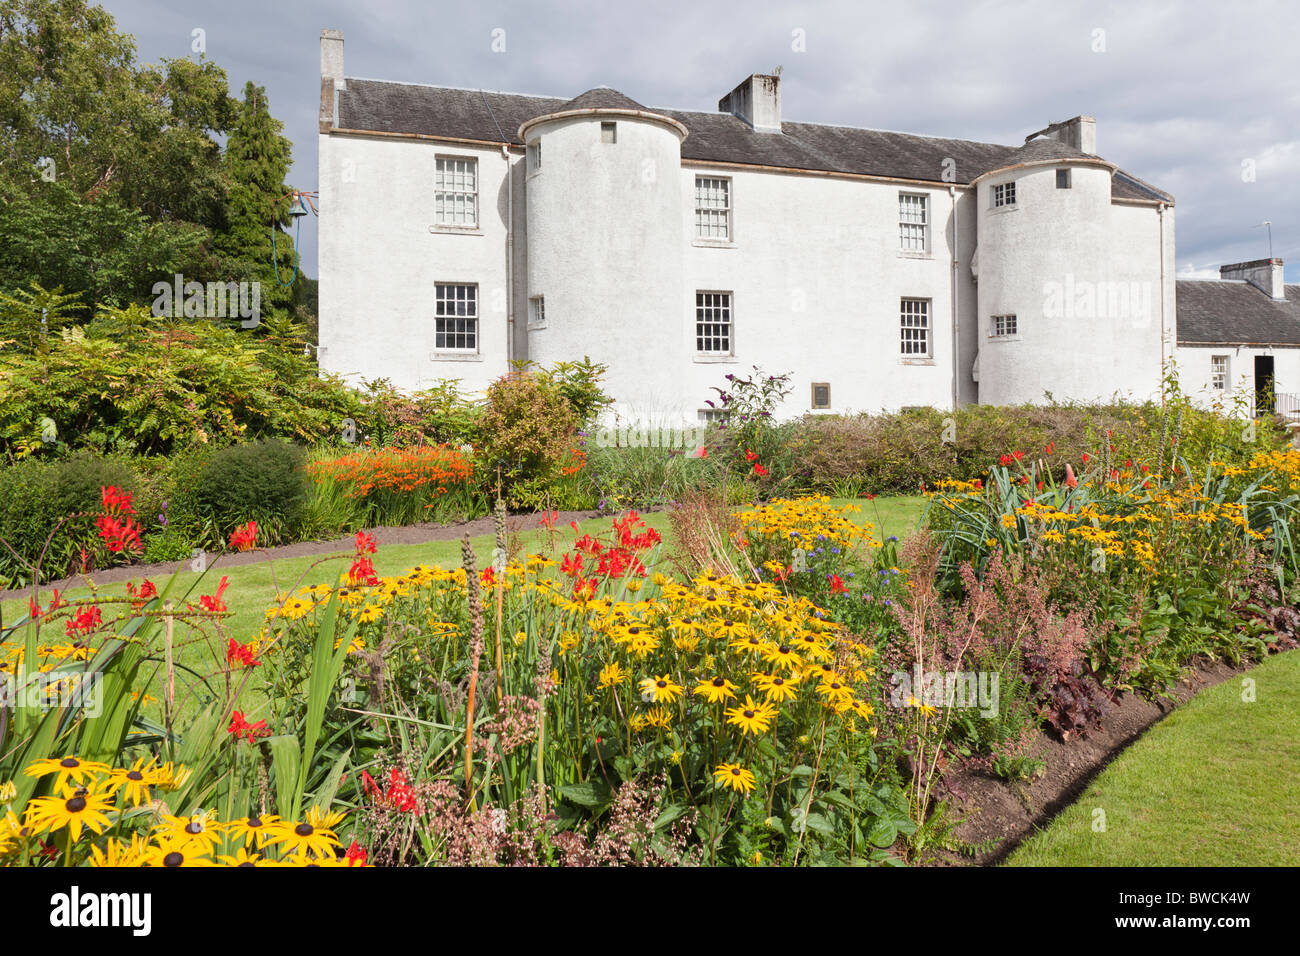 The birthplace in 1813 of the missionary David Livingstone, Blantyre, South Lanarkshire, Scotland - Stock Image